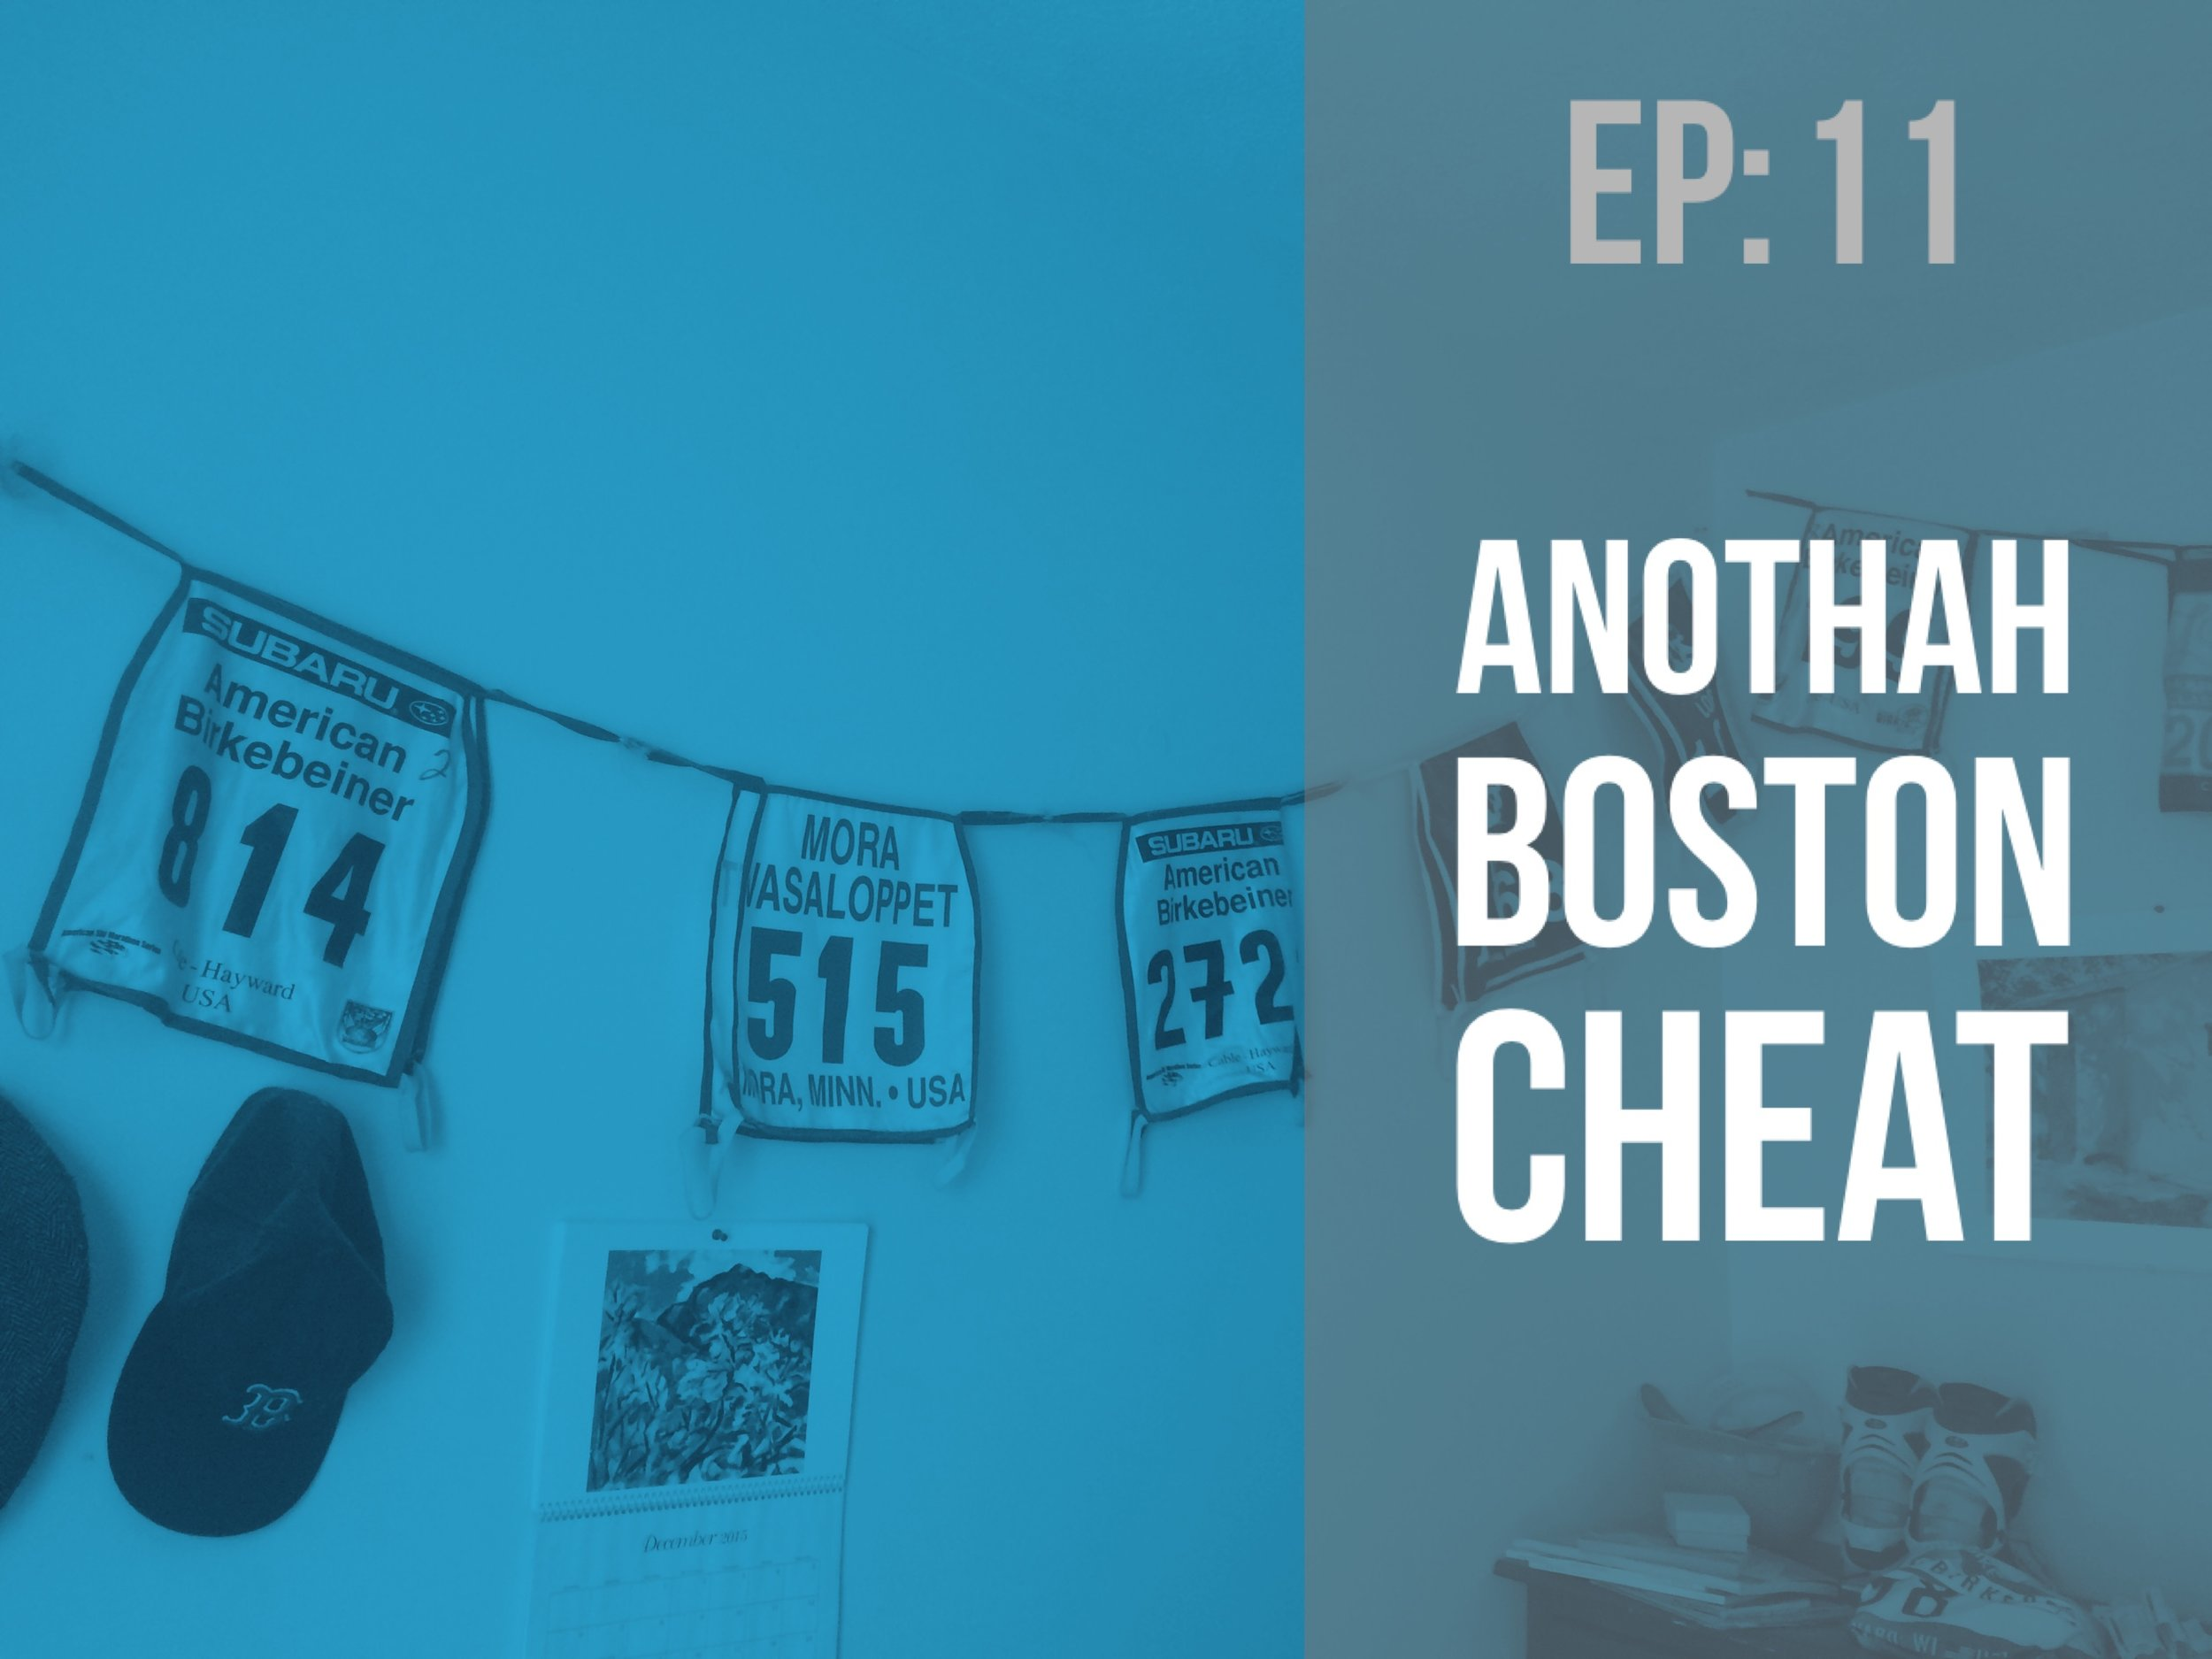 Episode 11: Anothah Boston Cheat